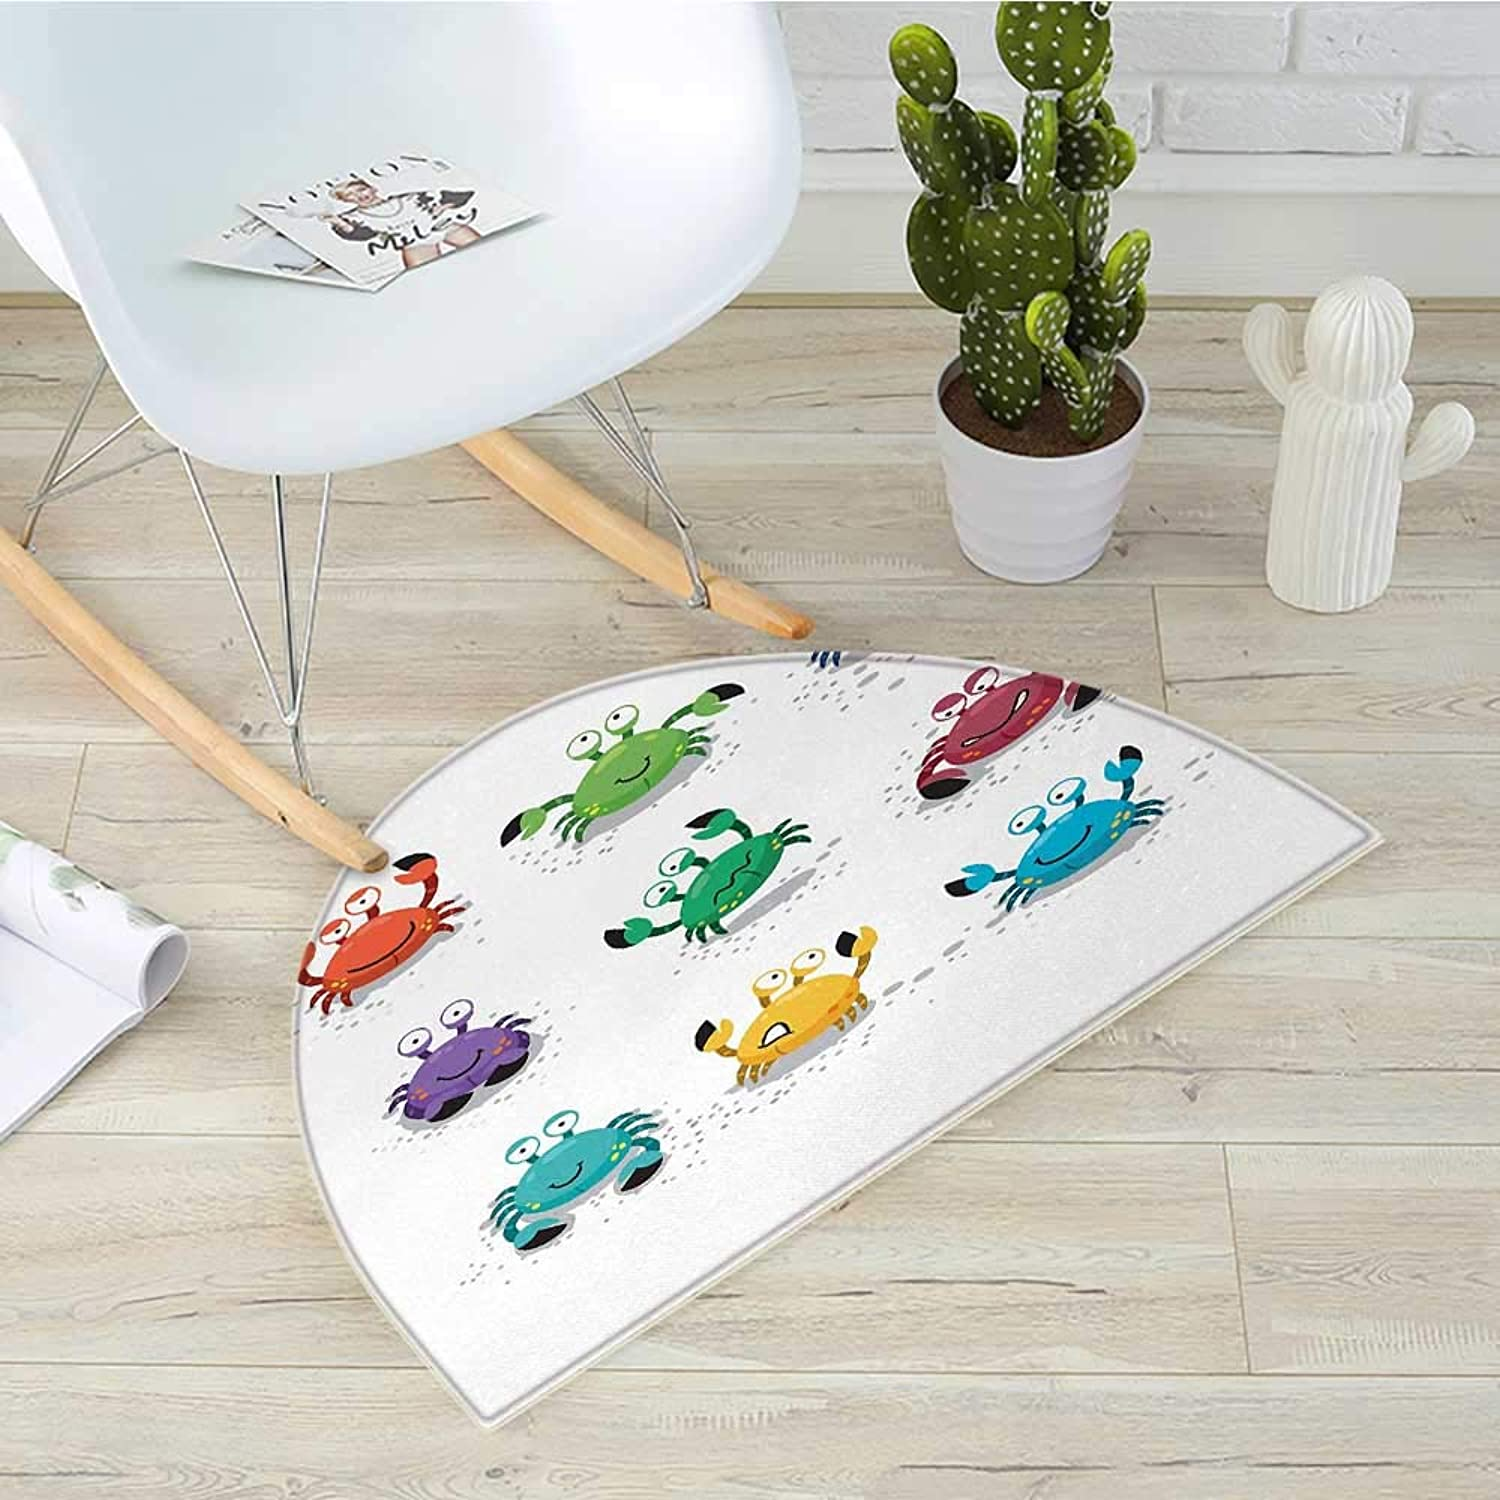 Crabs Half Round Door mats Joyful Cartoon Style colorful Crab Characters with Various Expressions and Emotions Bathroom Mat H 39.3  xD 59  Multicolor